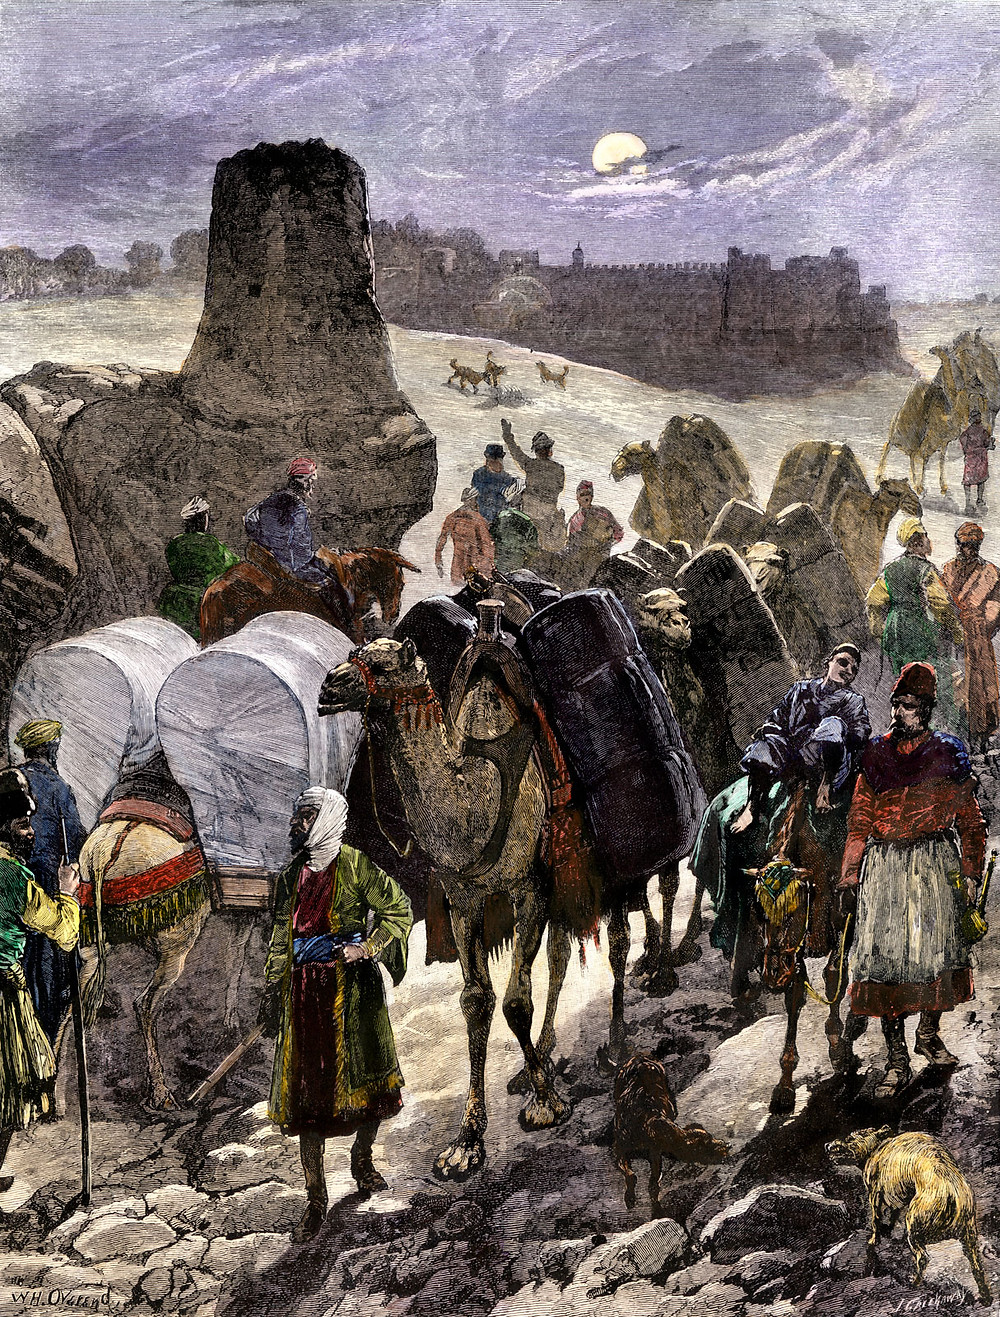 Trade caravans on the Silk Road, Central Asia